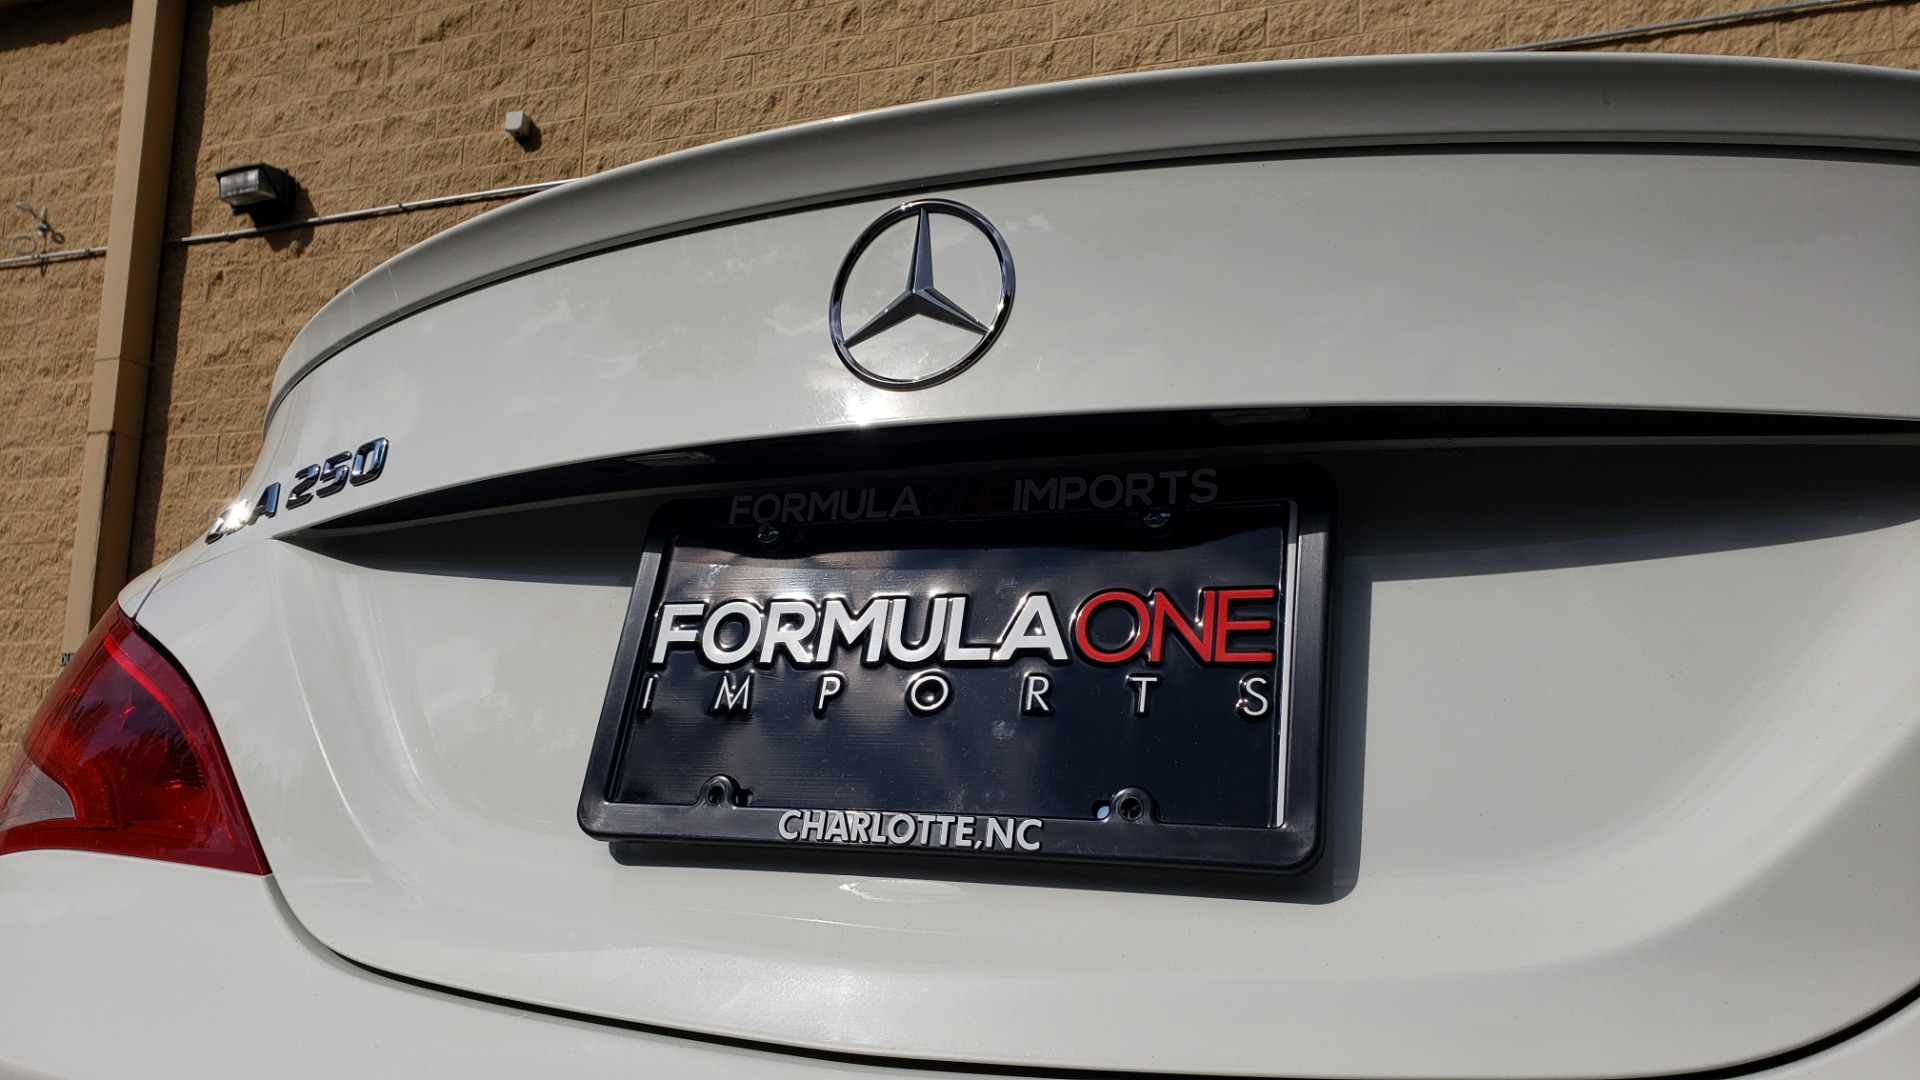 Used 2015 Mercedes-Benz CLA-Class CLA250 / FWD / SUNROOF / SPORT SUSP / CAMERA for sale Sold at Formula One Imports in Charlotte NC 28227 24